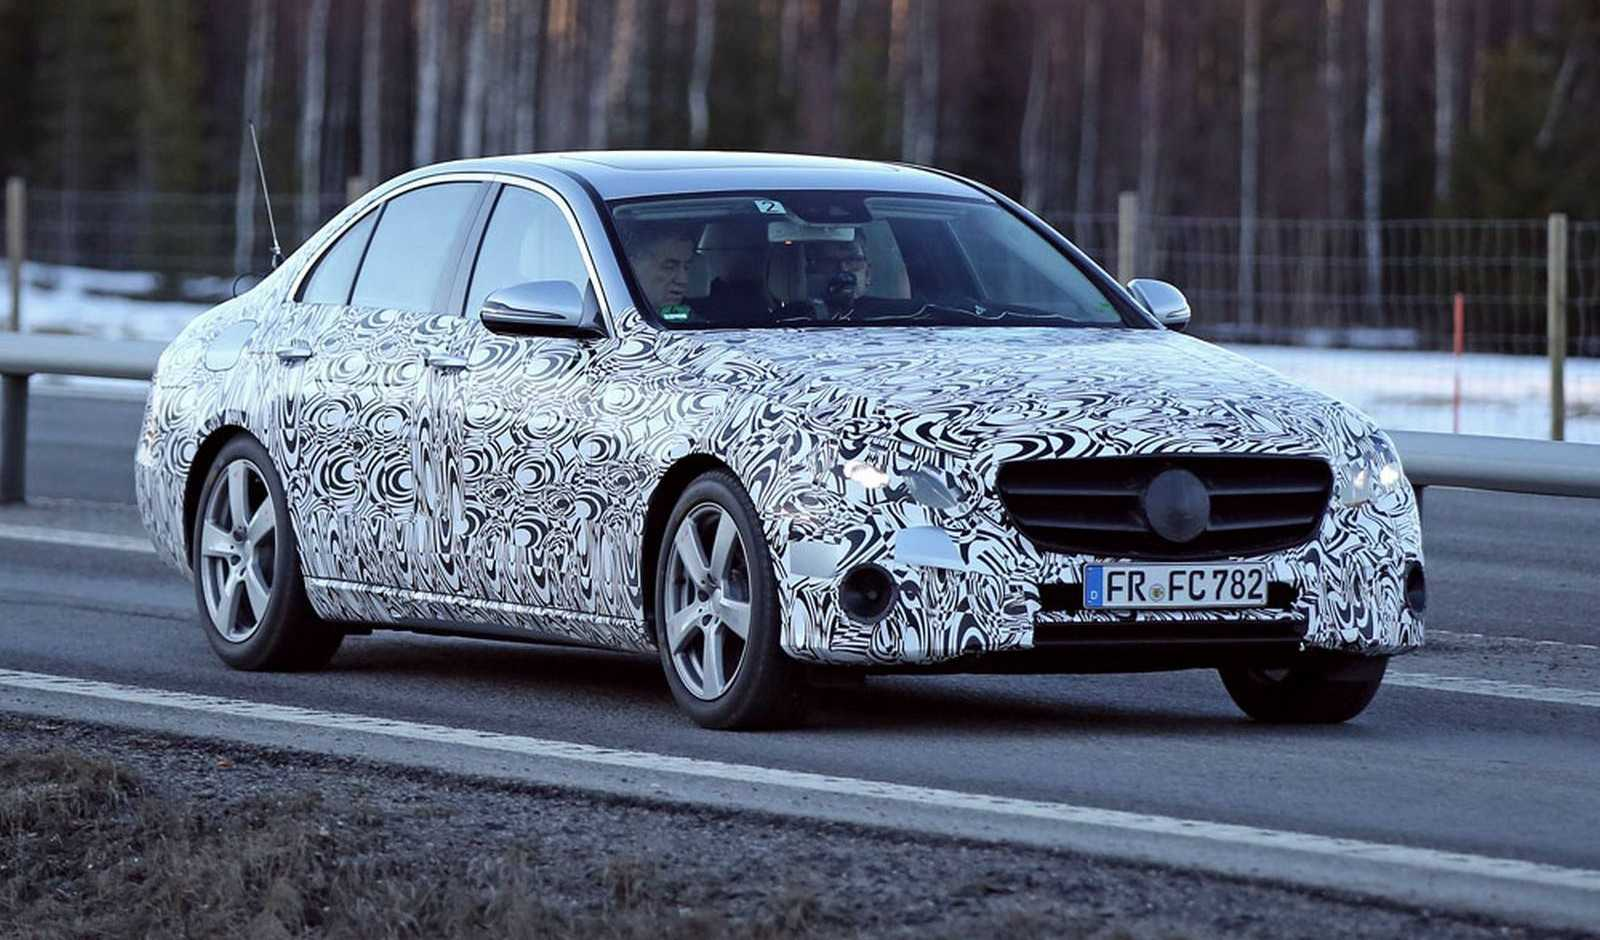 Mercedes Benz E-Class 2017 Edition Showcases its Interiors before Grand Reveal